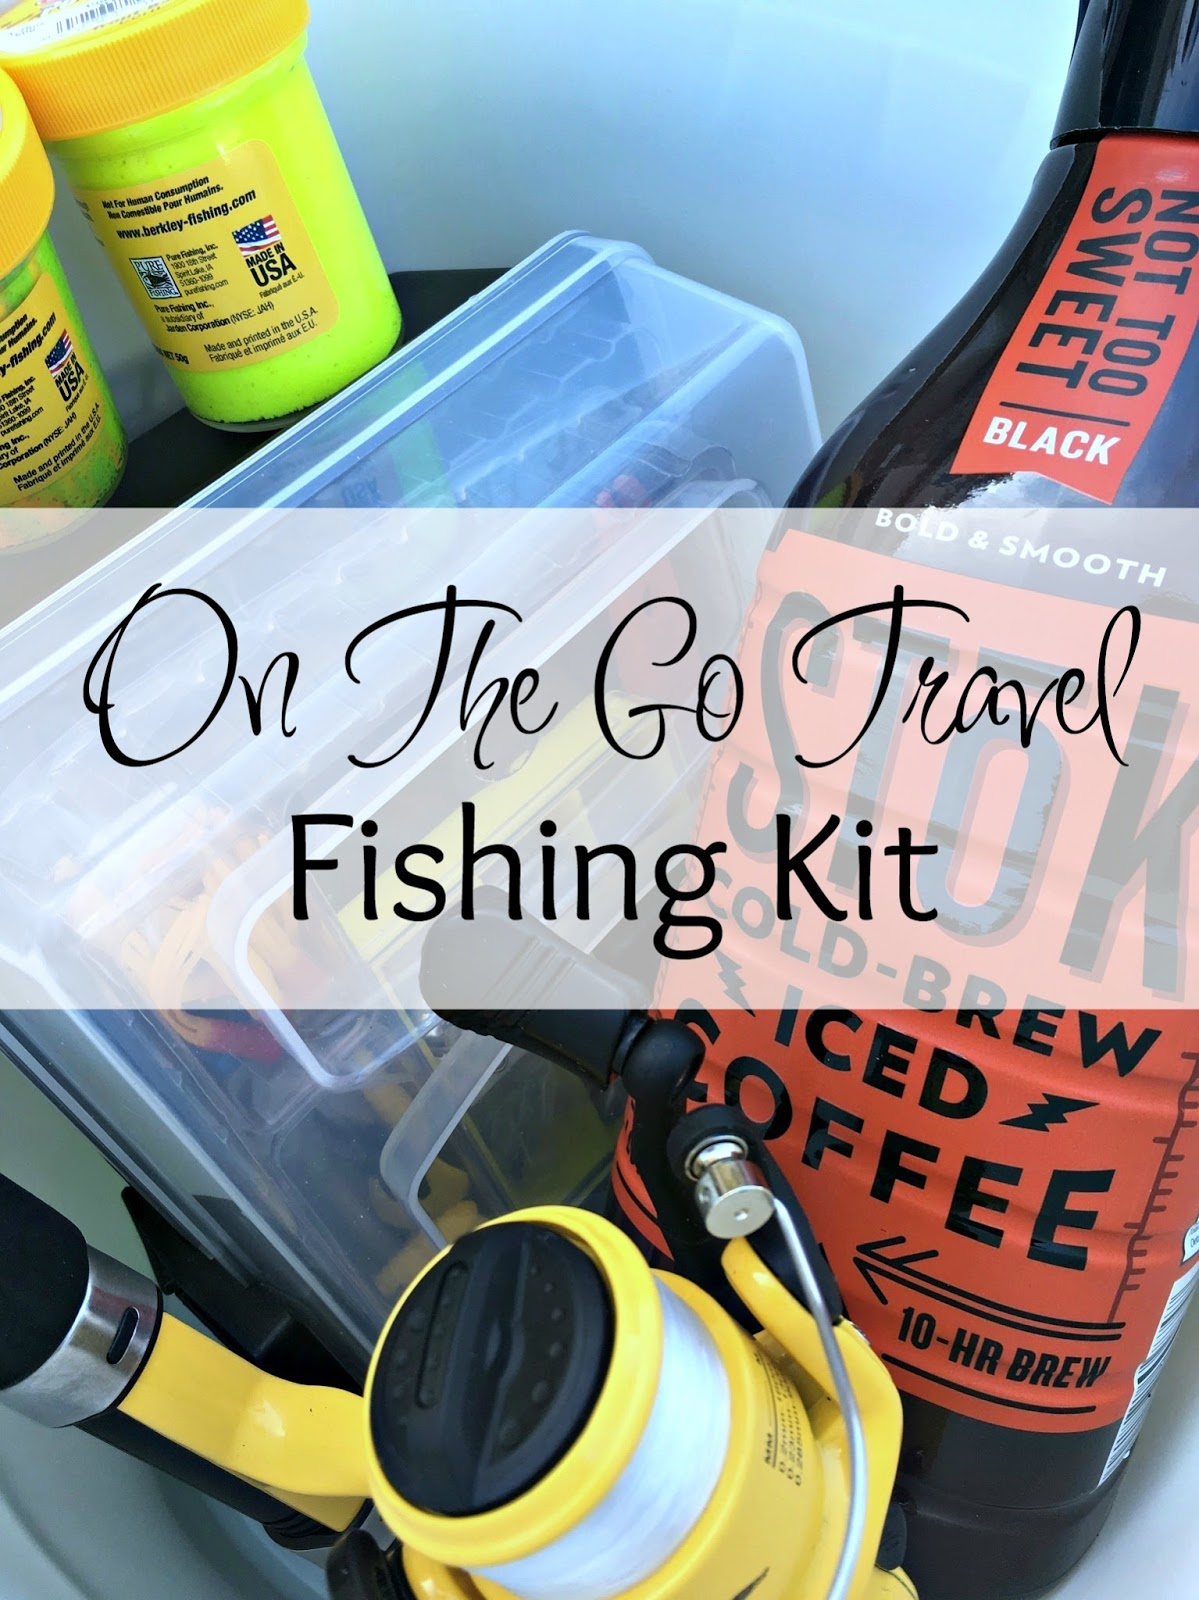 motorcycles fishing and inspiration with stokcoffee cbias ad